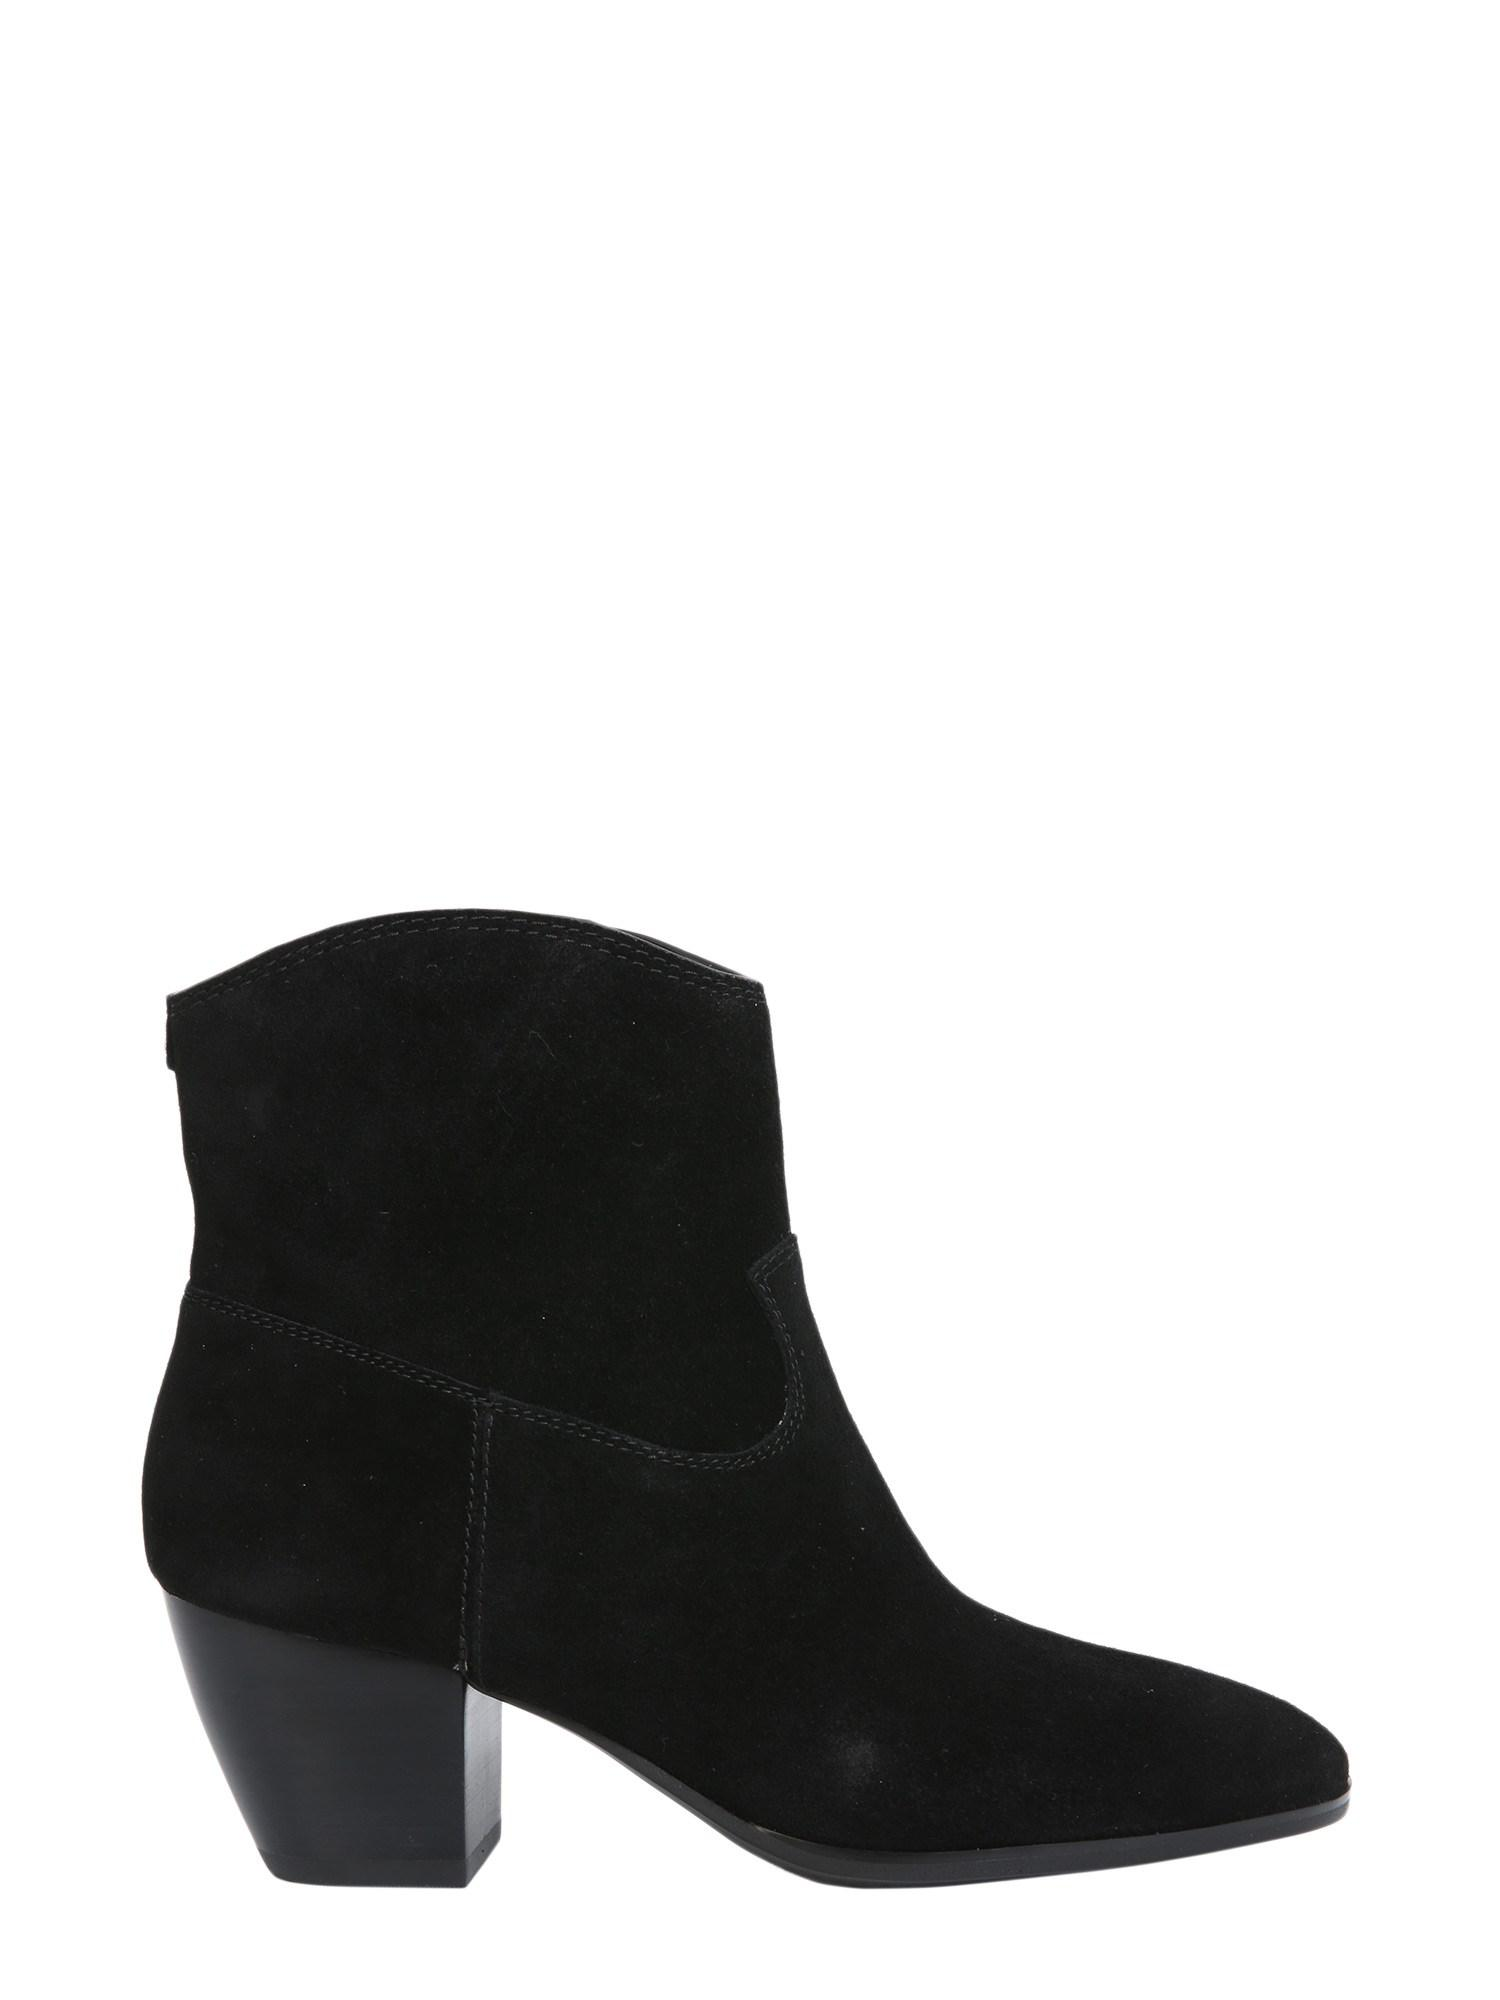 883e4e9e688 Lyst - MICHAEL Michael Kors Avery Suede Boots in Black